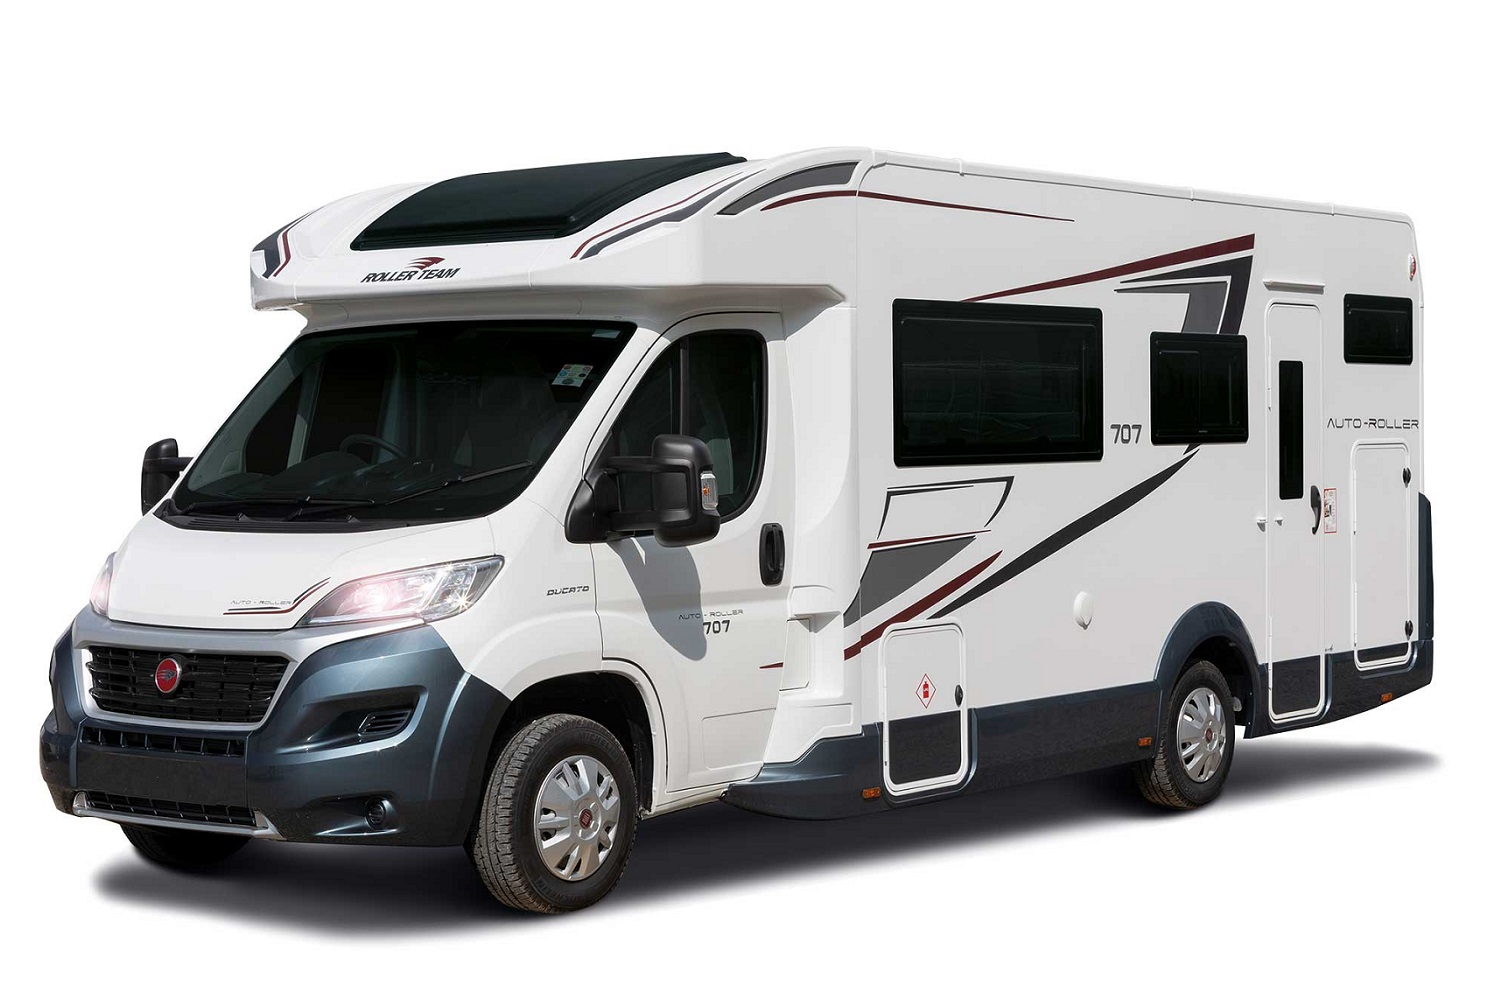 Landcruise Motorhome Hire Auto-Roller 707